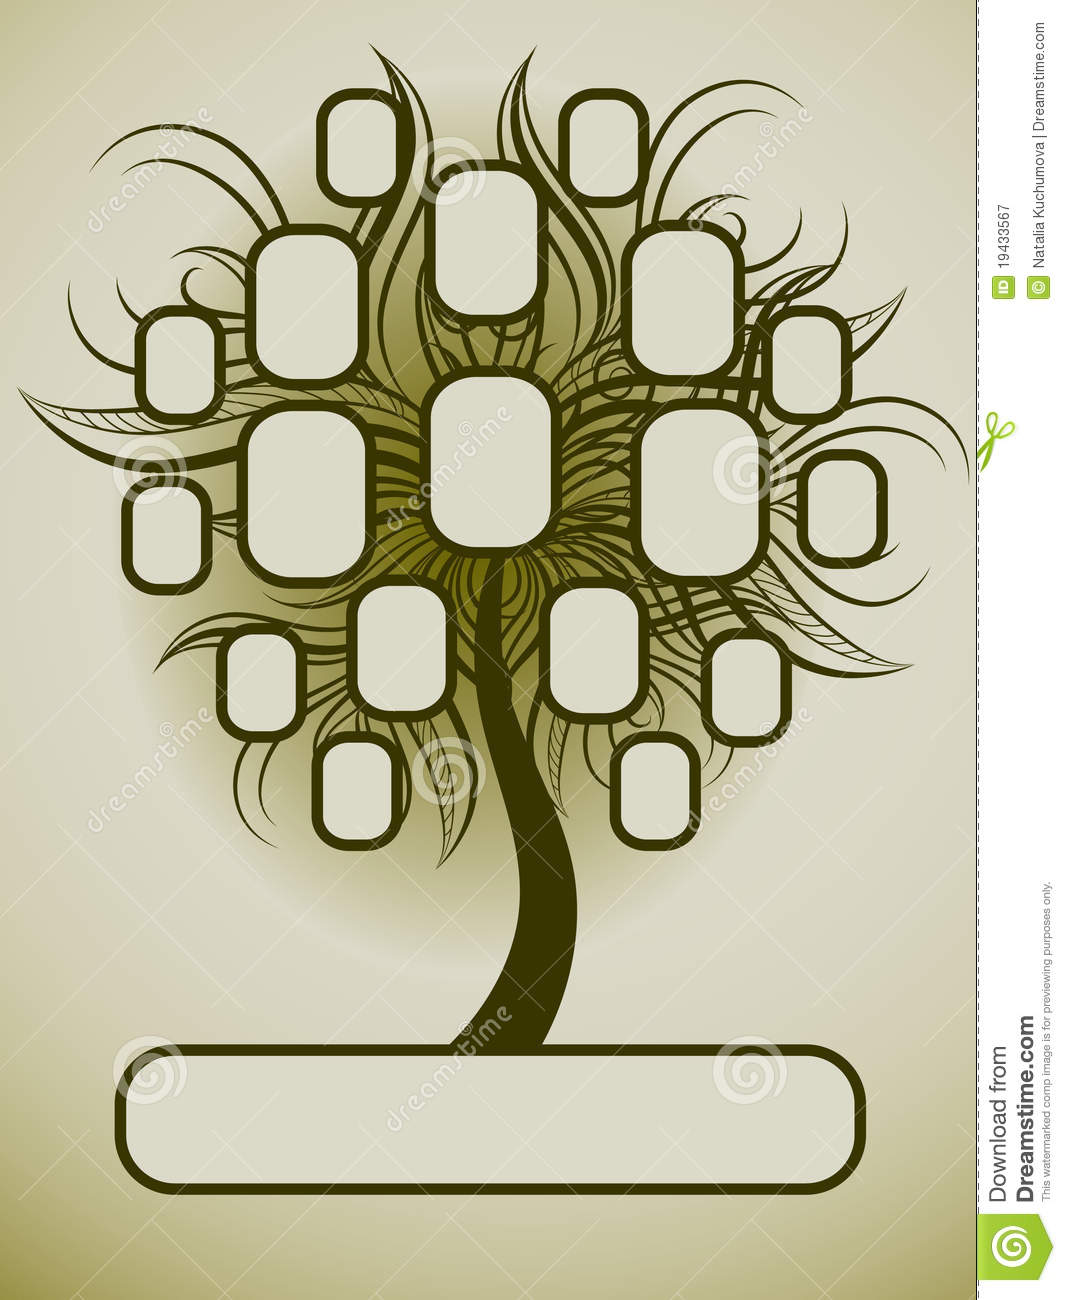 Vector Family Tree Design With Frames Royalty Free Stock ...